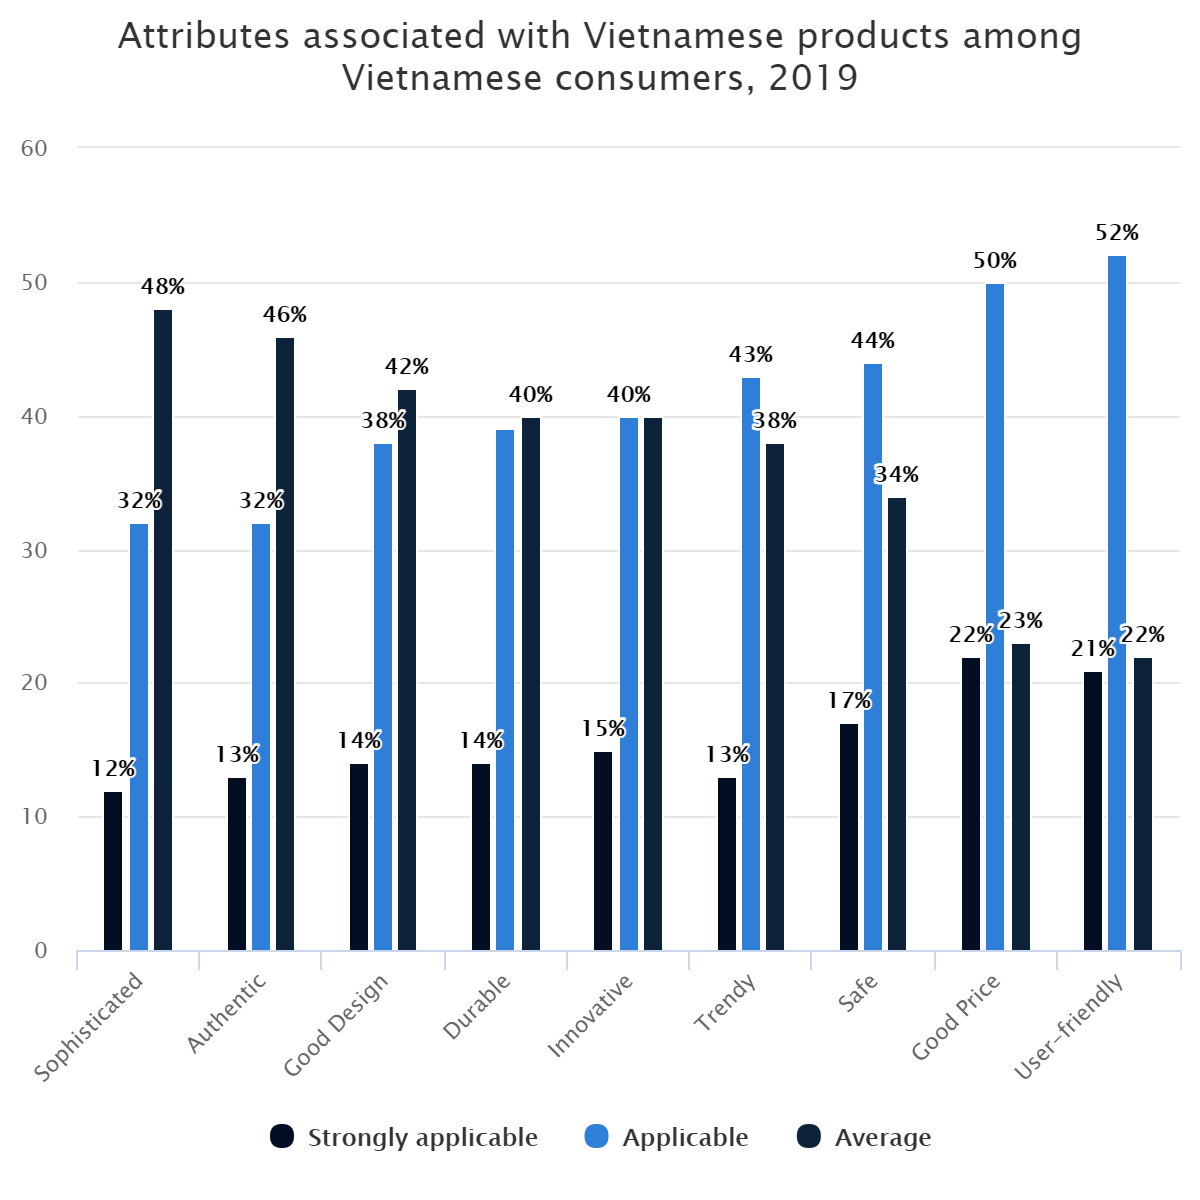 Attributes associated with Vietnamese products among Vietnamese consumers, 2019